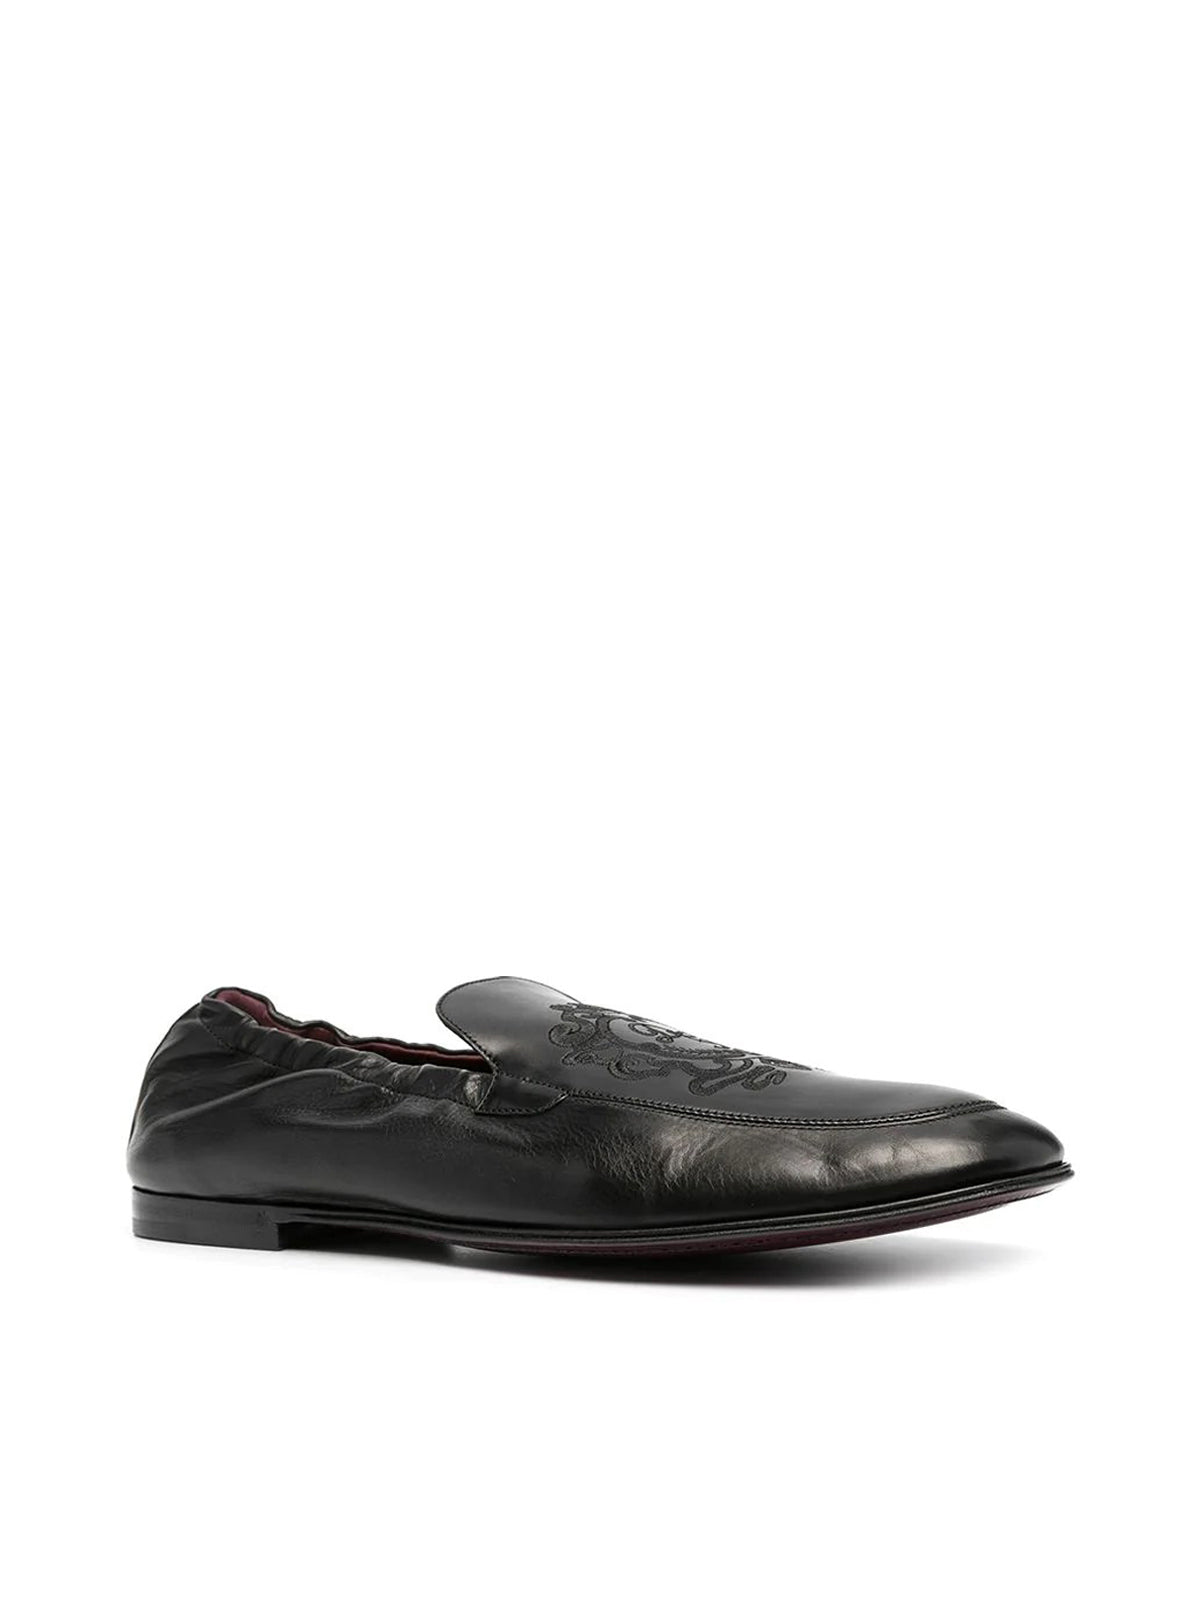 logo-embroidered leather loafers